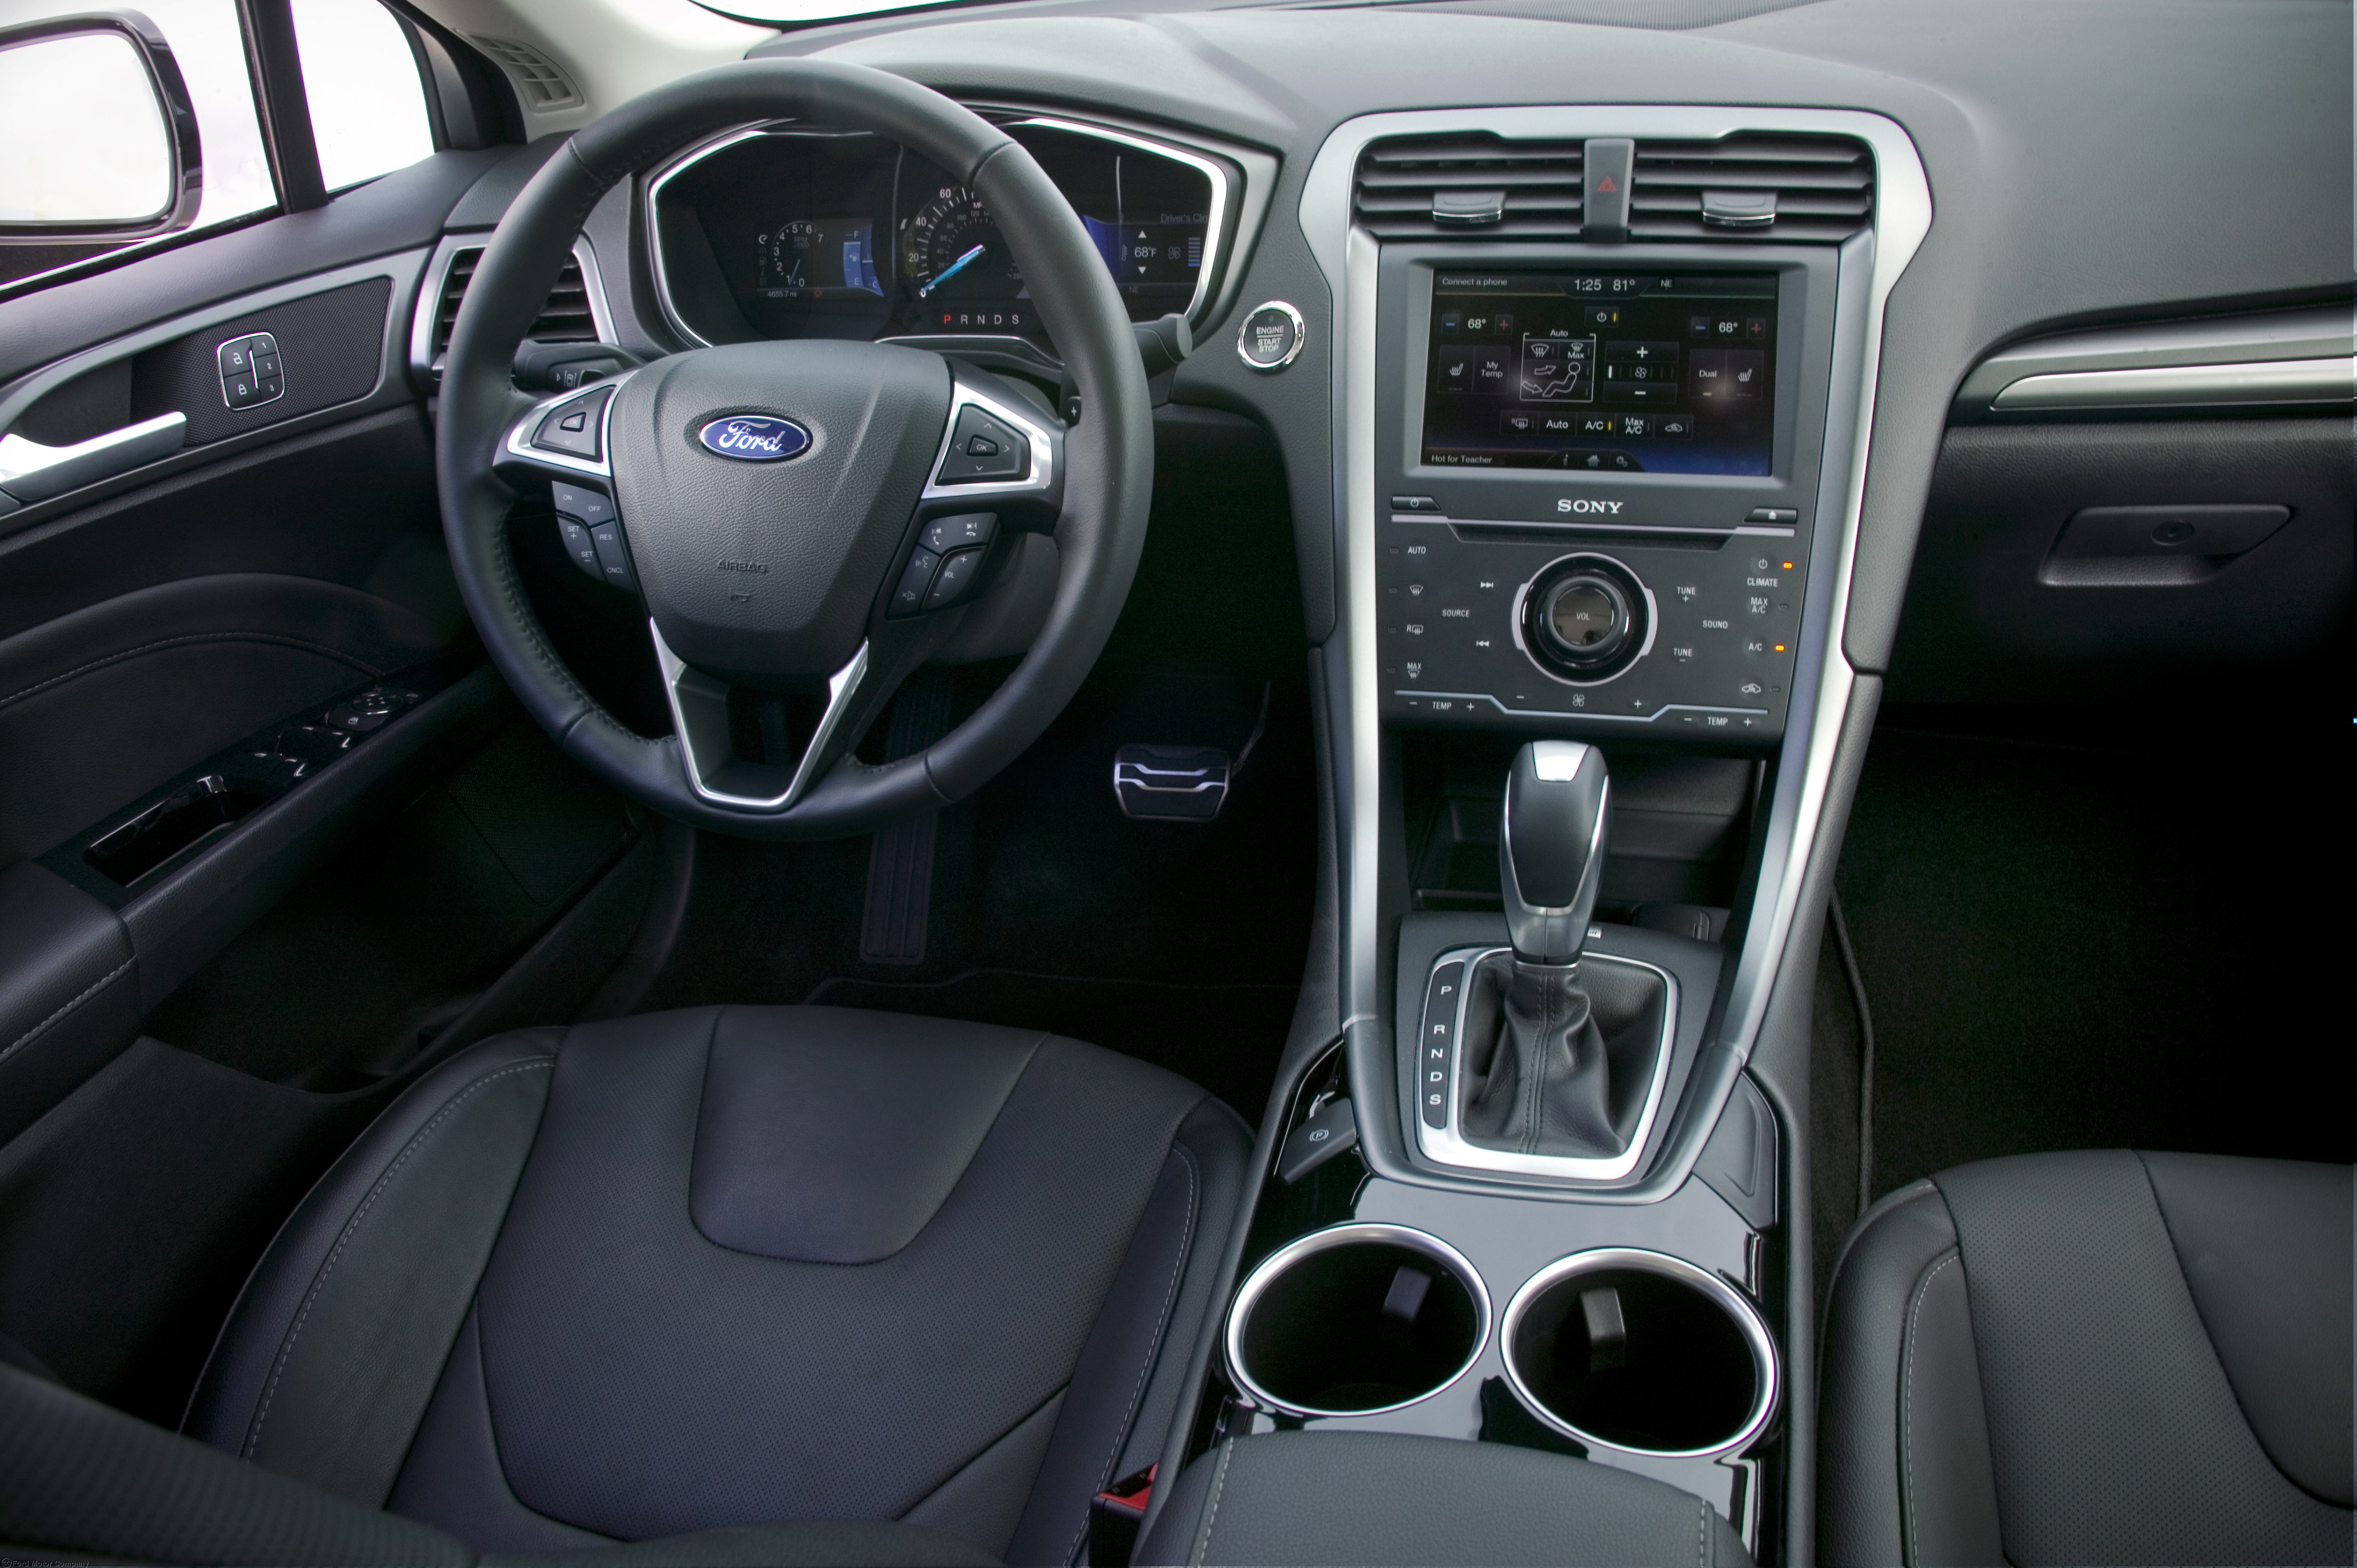 Ford Fusion Interior Nice Design